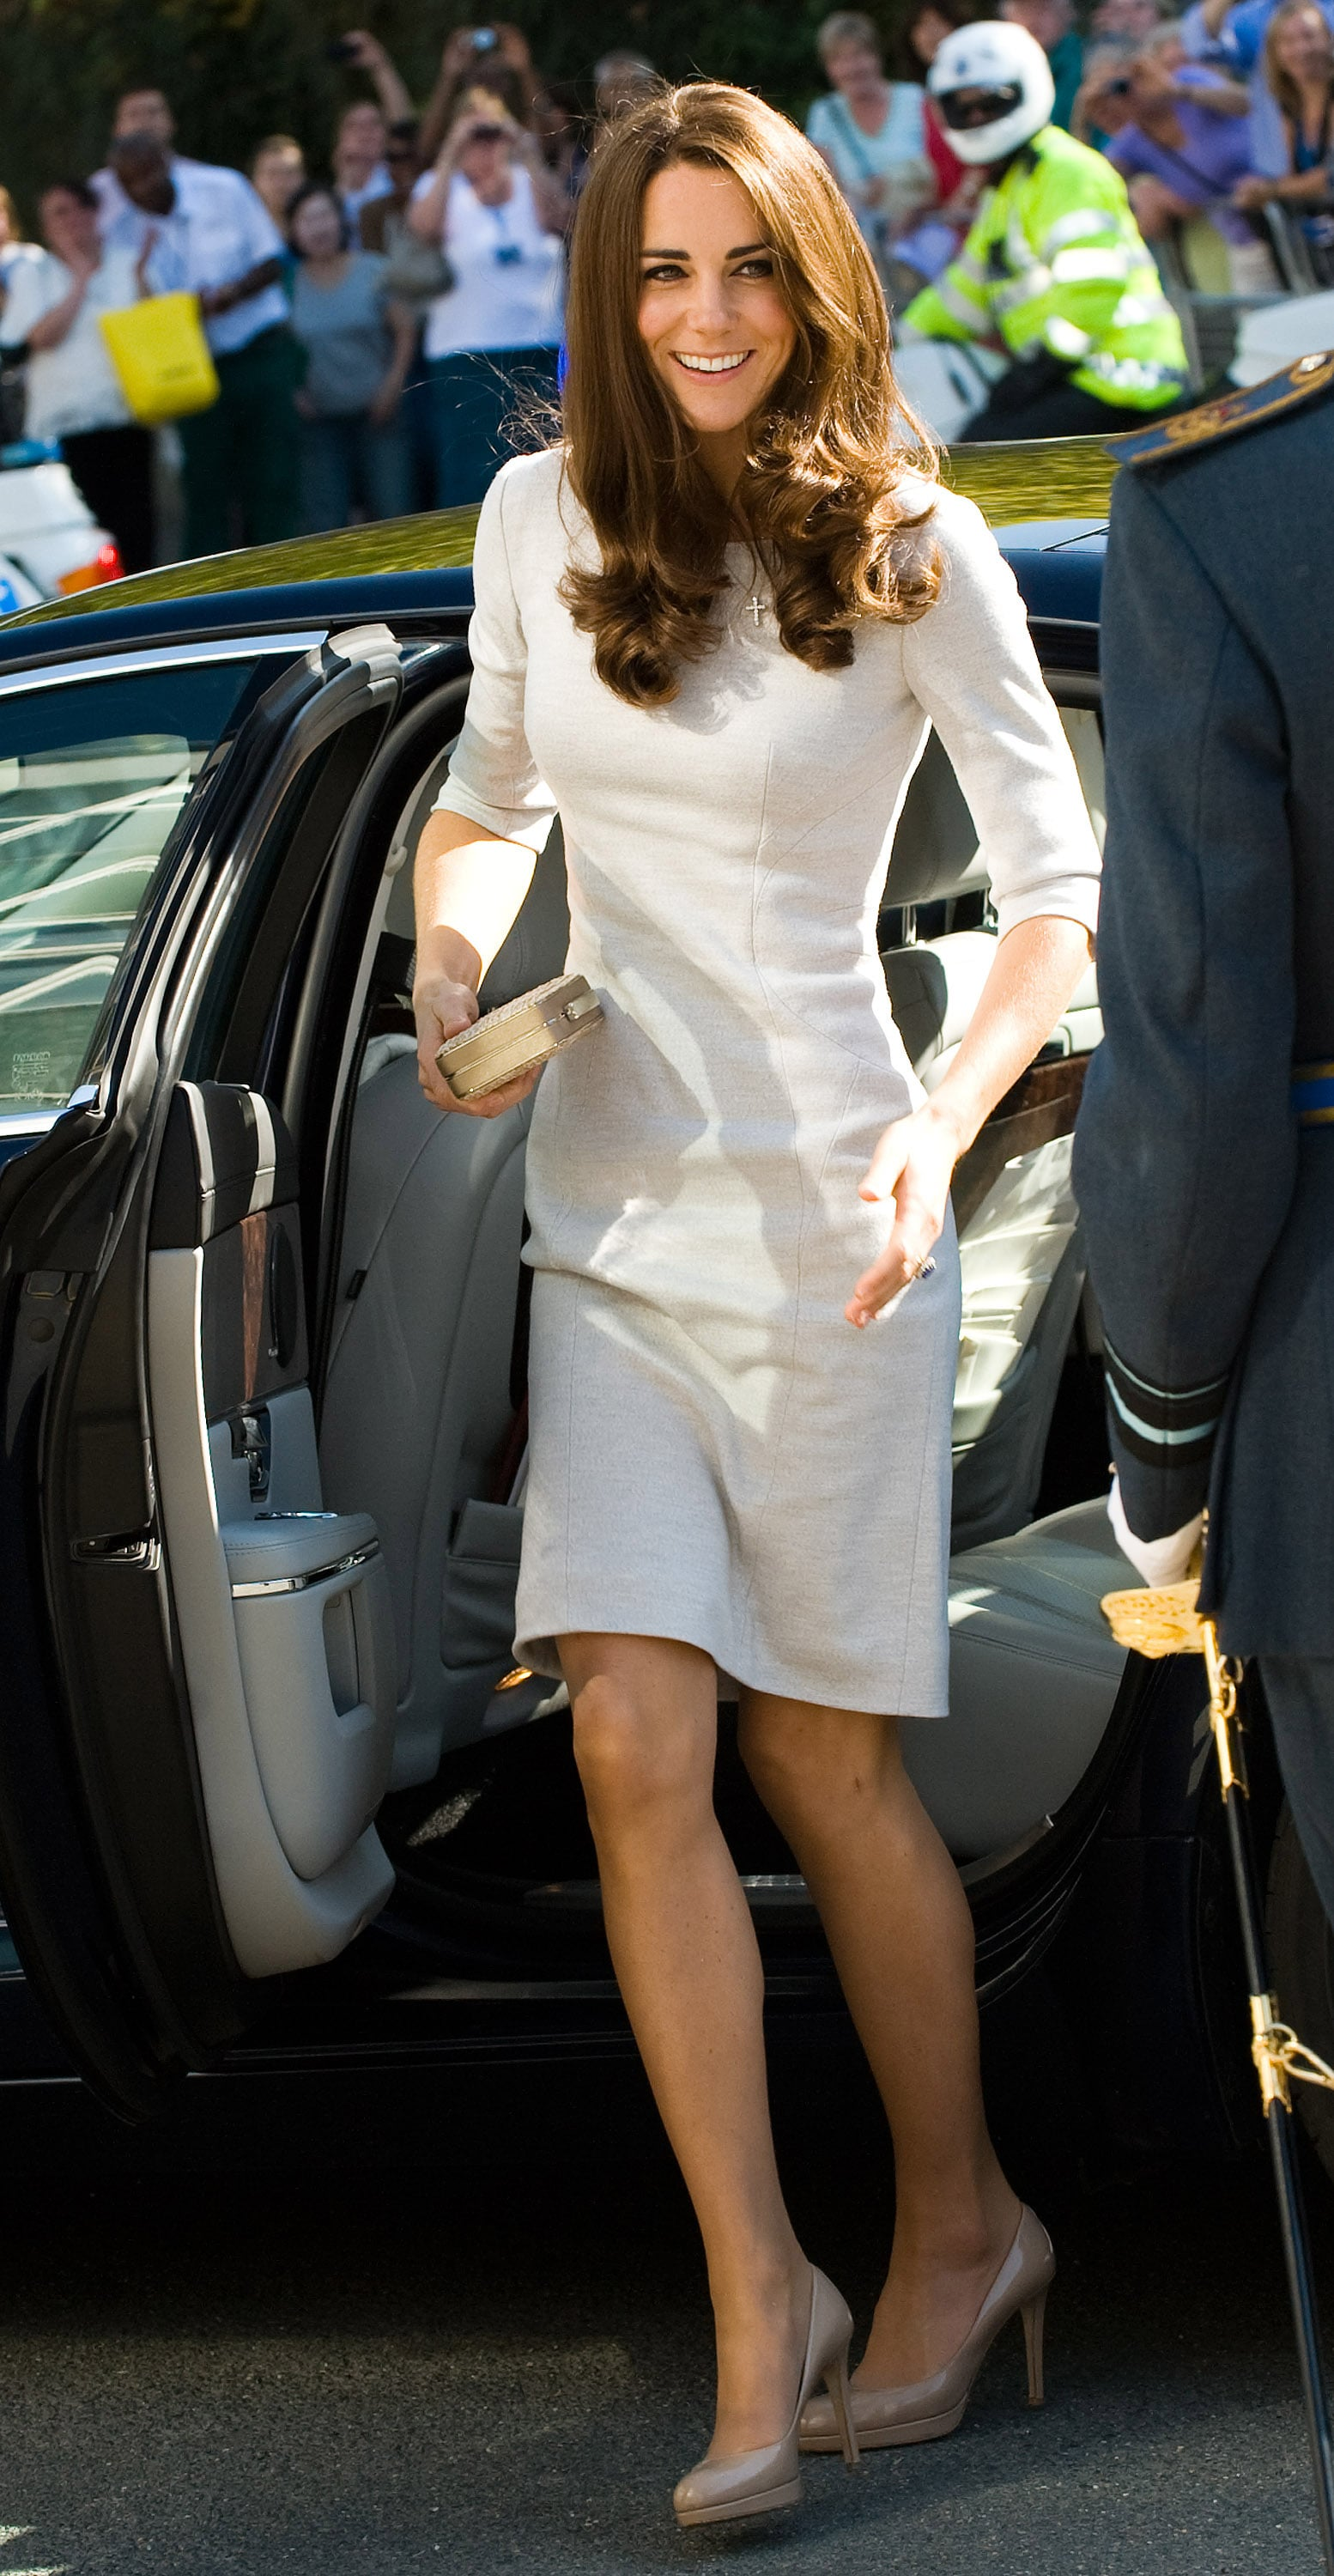 Kate Middleton fixed her dress.